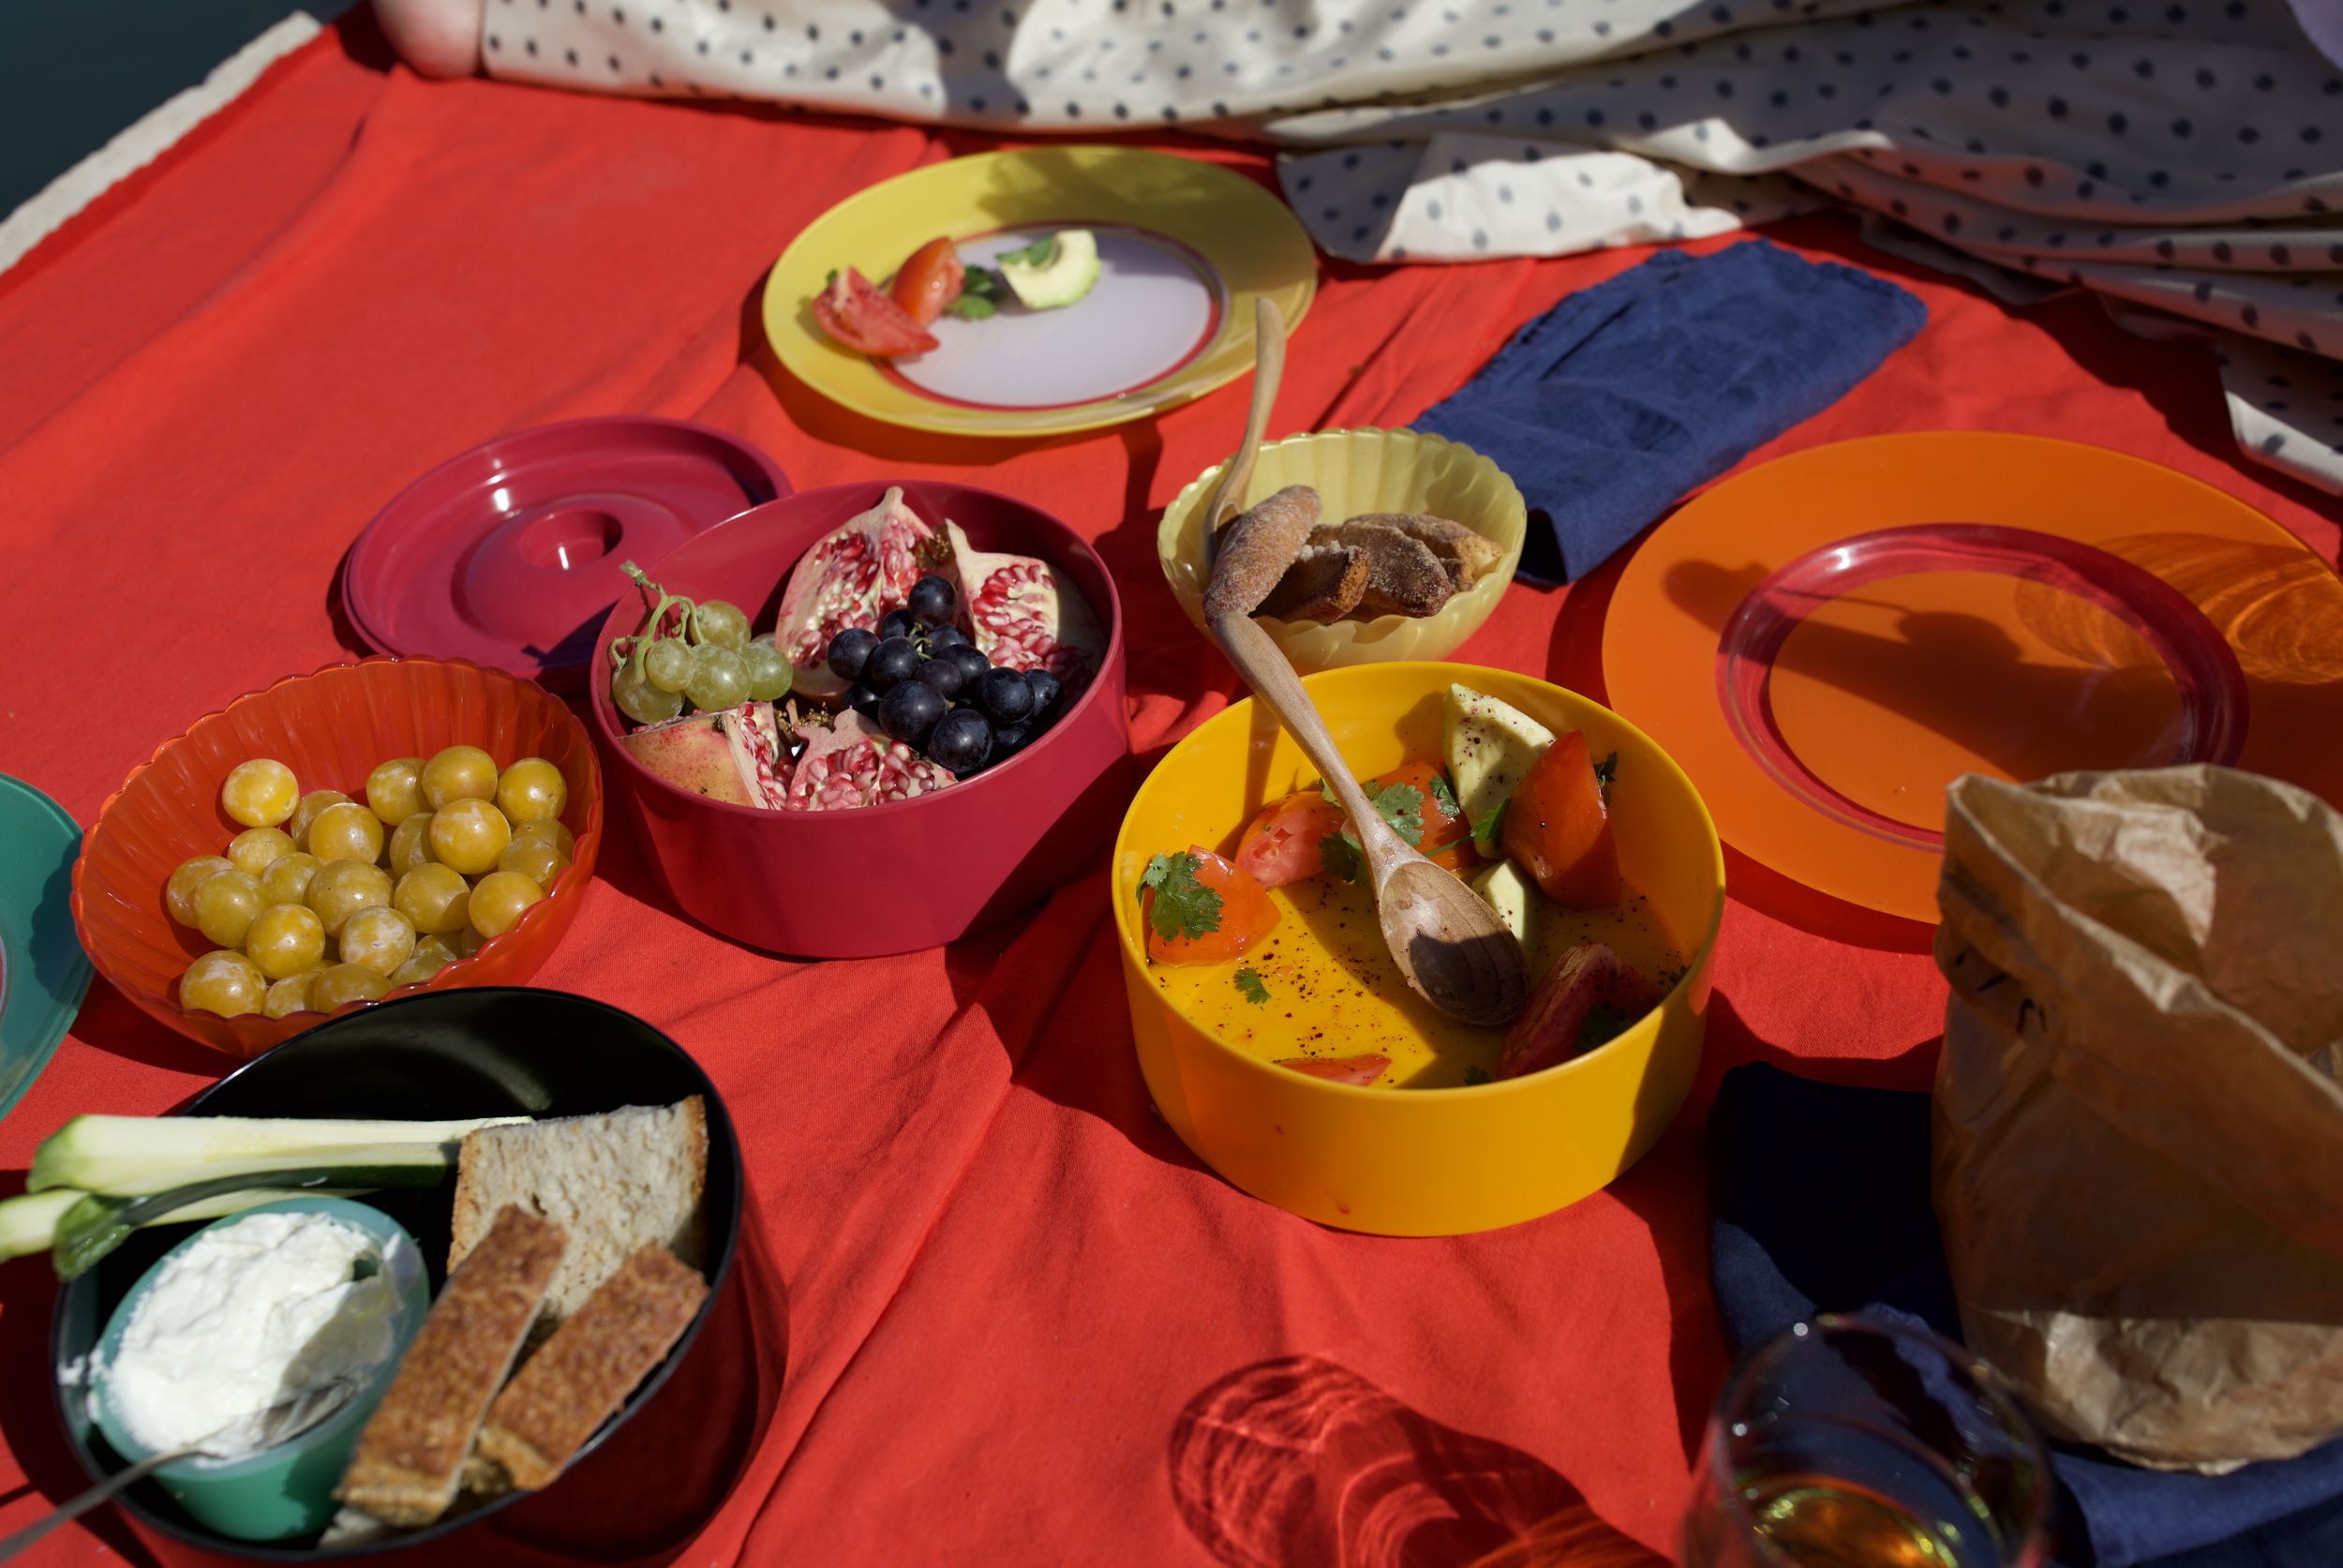 Picnic on the bank of the Rhone River with Pomegranate, Mirabelles, Navette de Marseilles, and Tomato Salad: 3 fresh tomatoes cubed, 1 bunch fresh cilantro, olive oil, salt and pepper to taste.